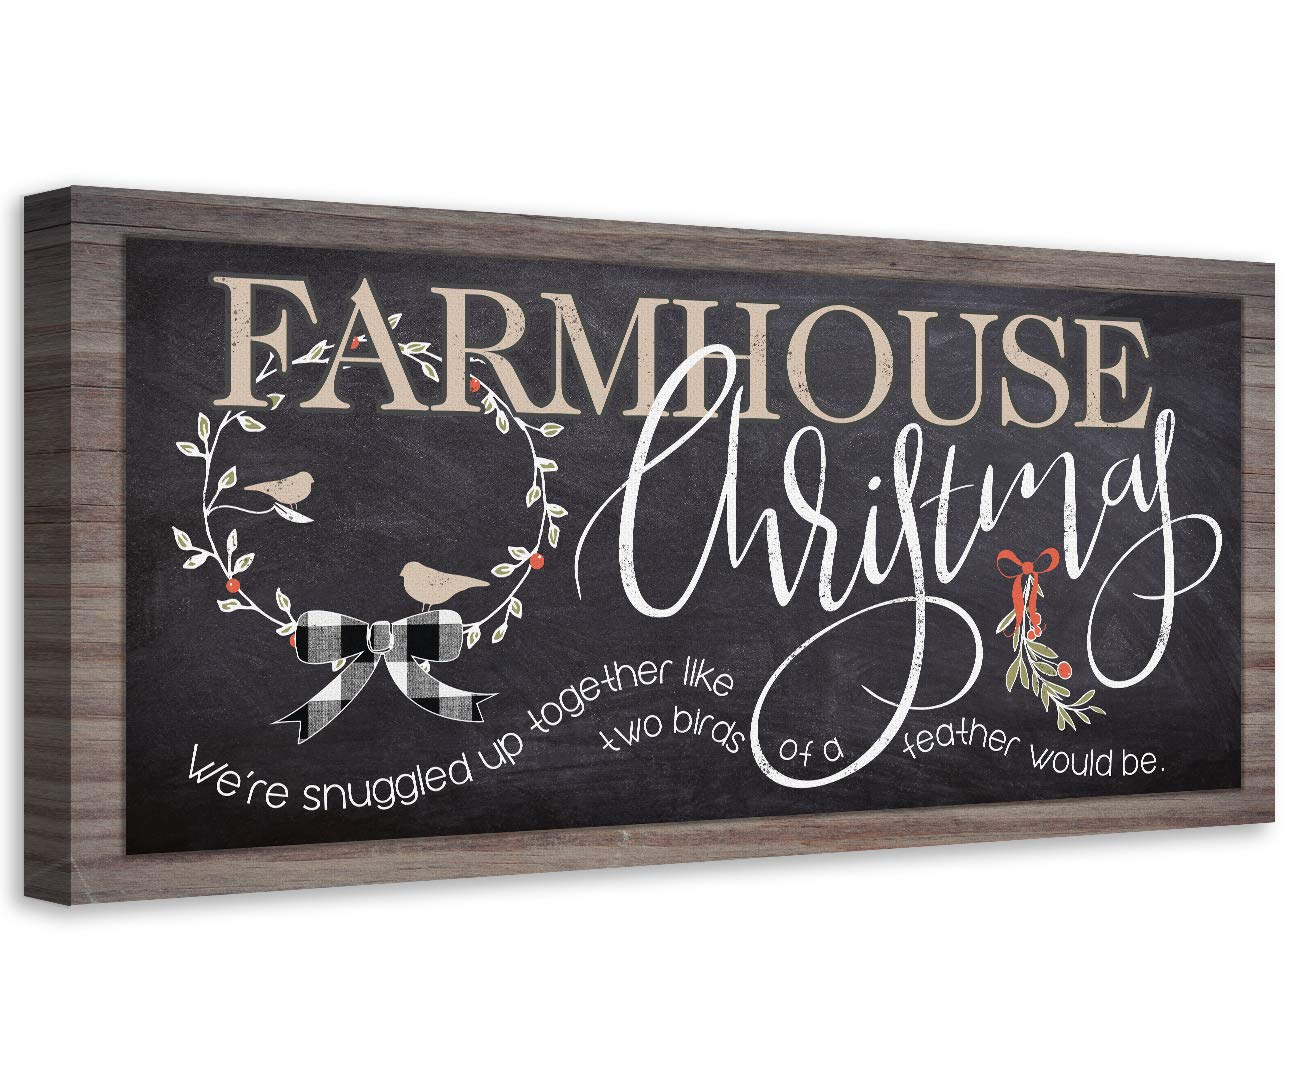 Farmhouse Christmas Not Printed on Makes Wood - security Unframed Print Dealing full price reduction